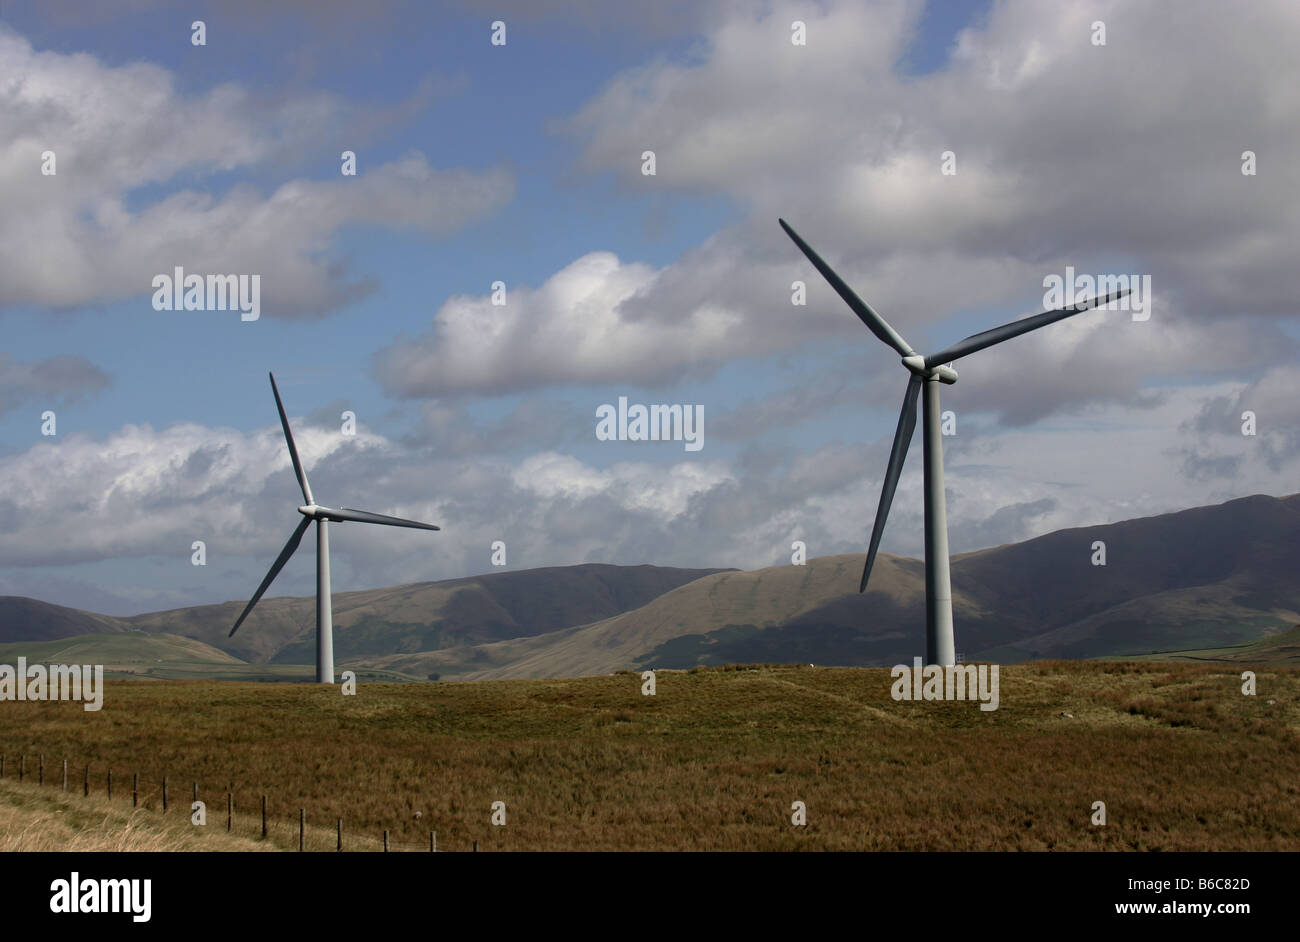 wind farms in cumbria Plans are being drawn up to double the size of a cumbrian wind farm, making it the largest in the world.